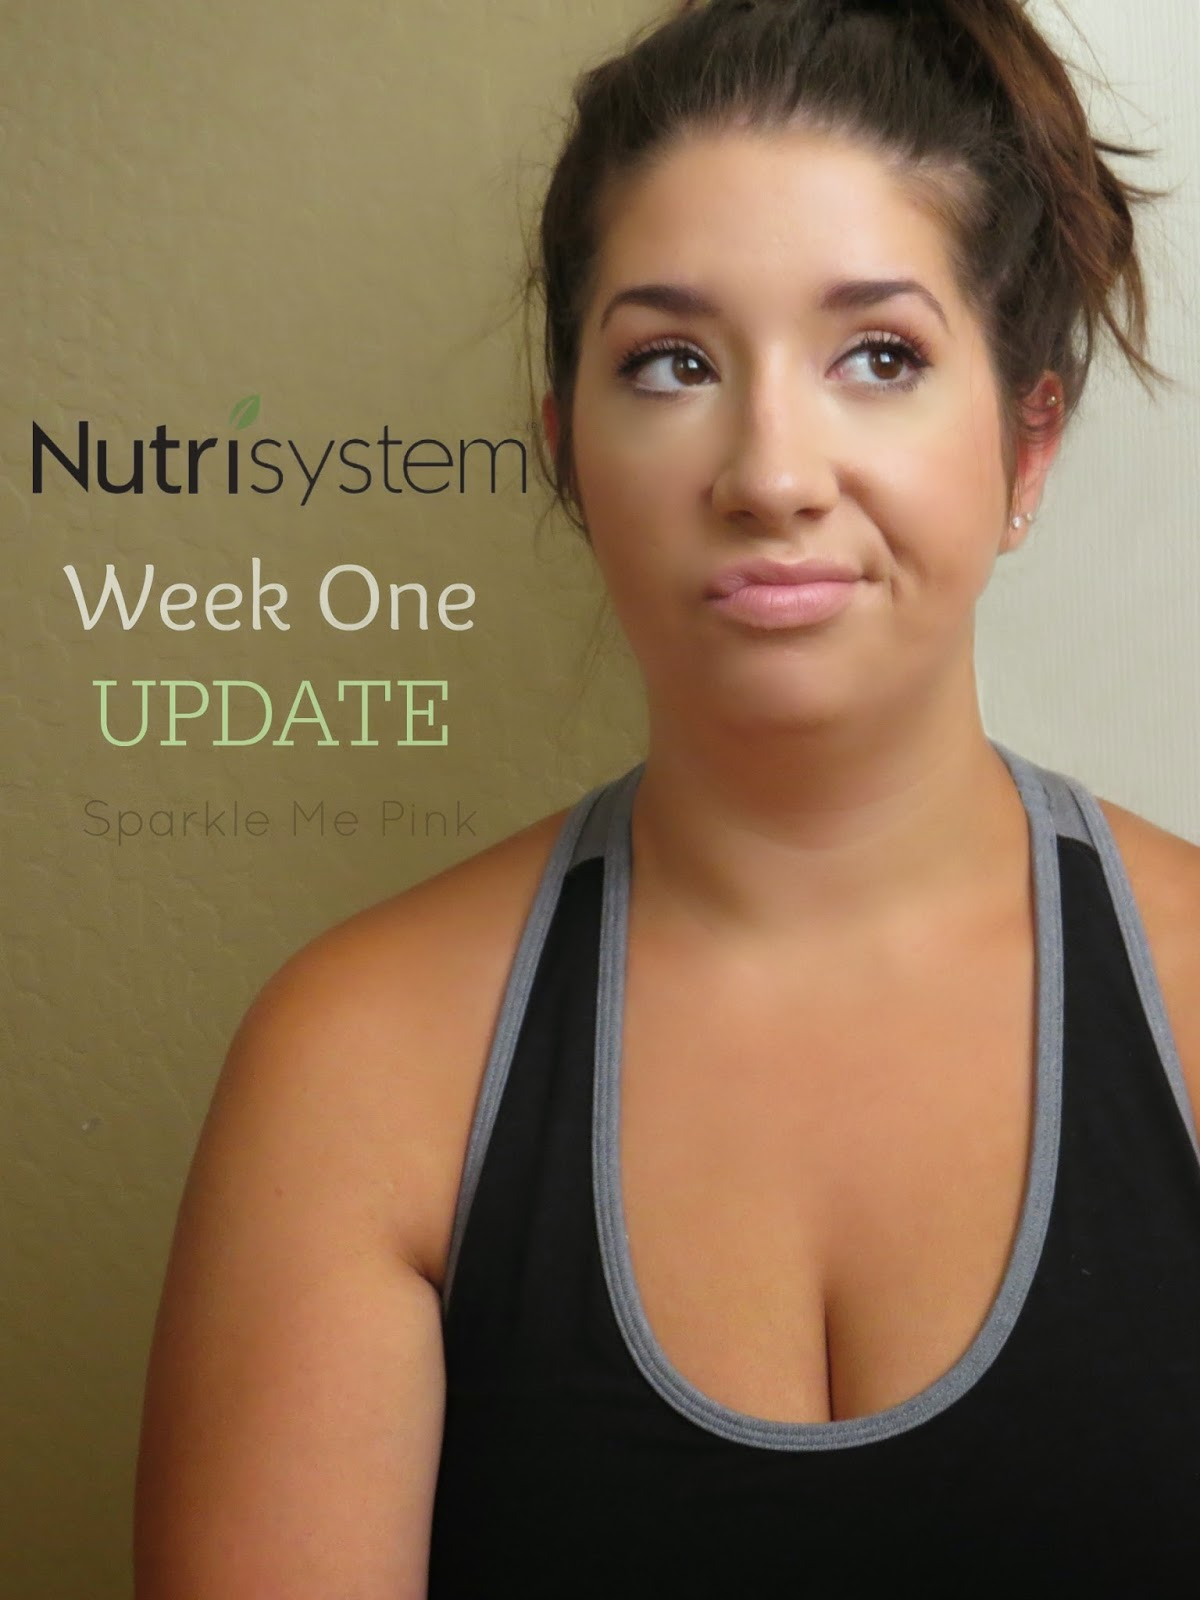 Sparkle me pink the truth about nutrisystem fast5 week one update the truth about nutrisystem fast5 week one update solutioingenieria Choice Image